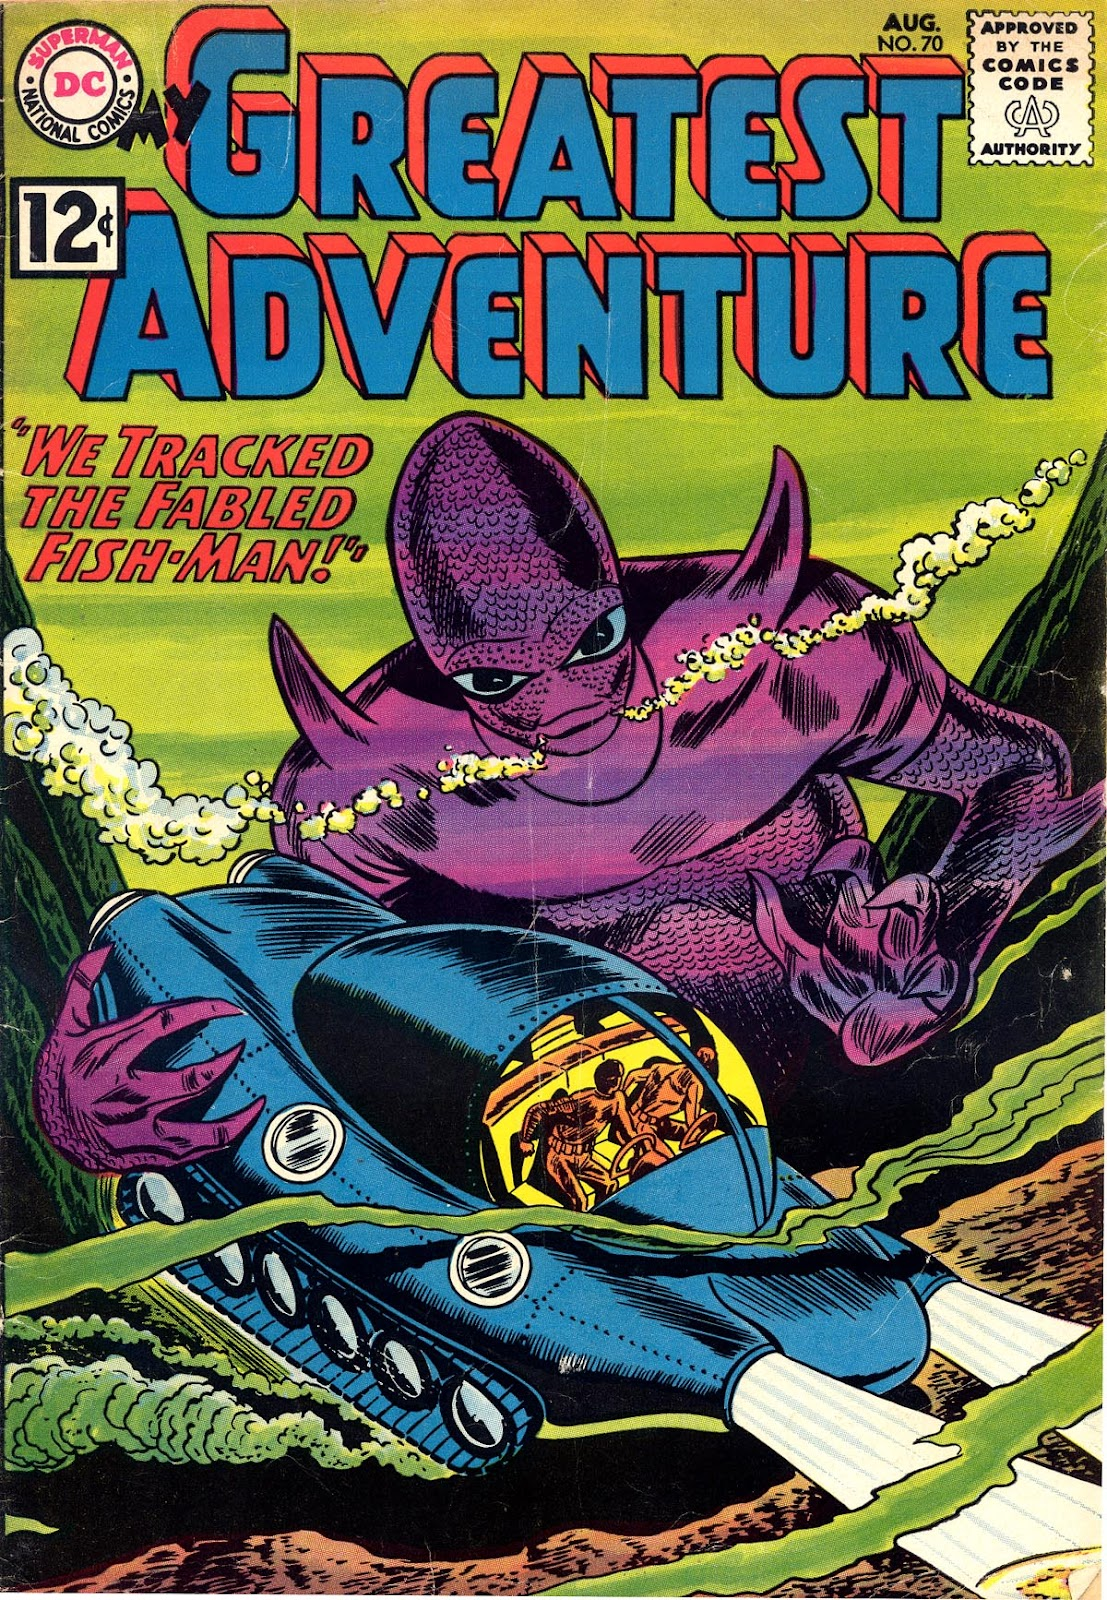 My Greatest Adventure (1955) issue 70 - Page 1